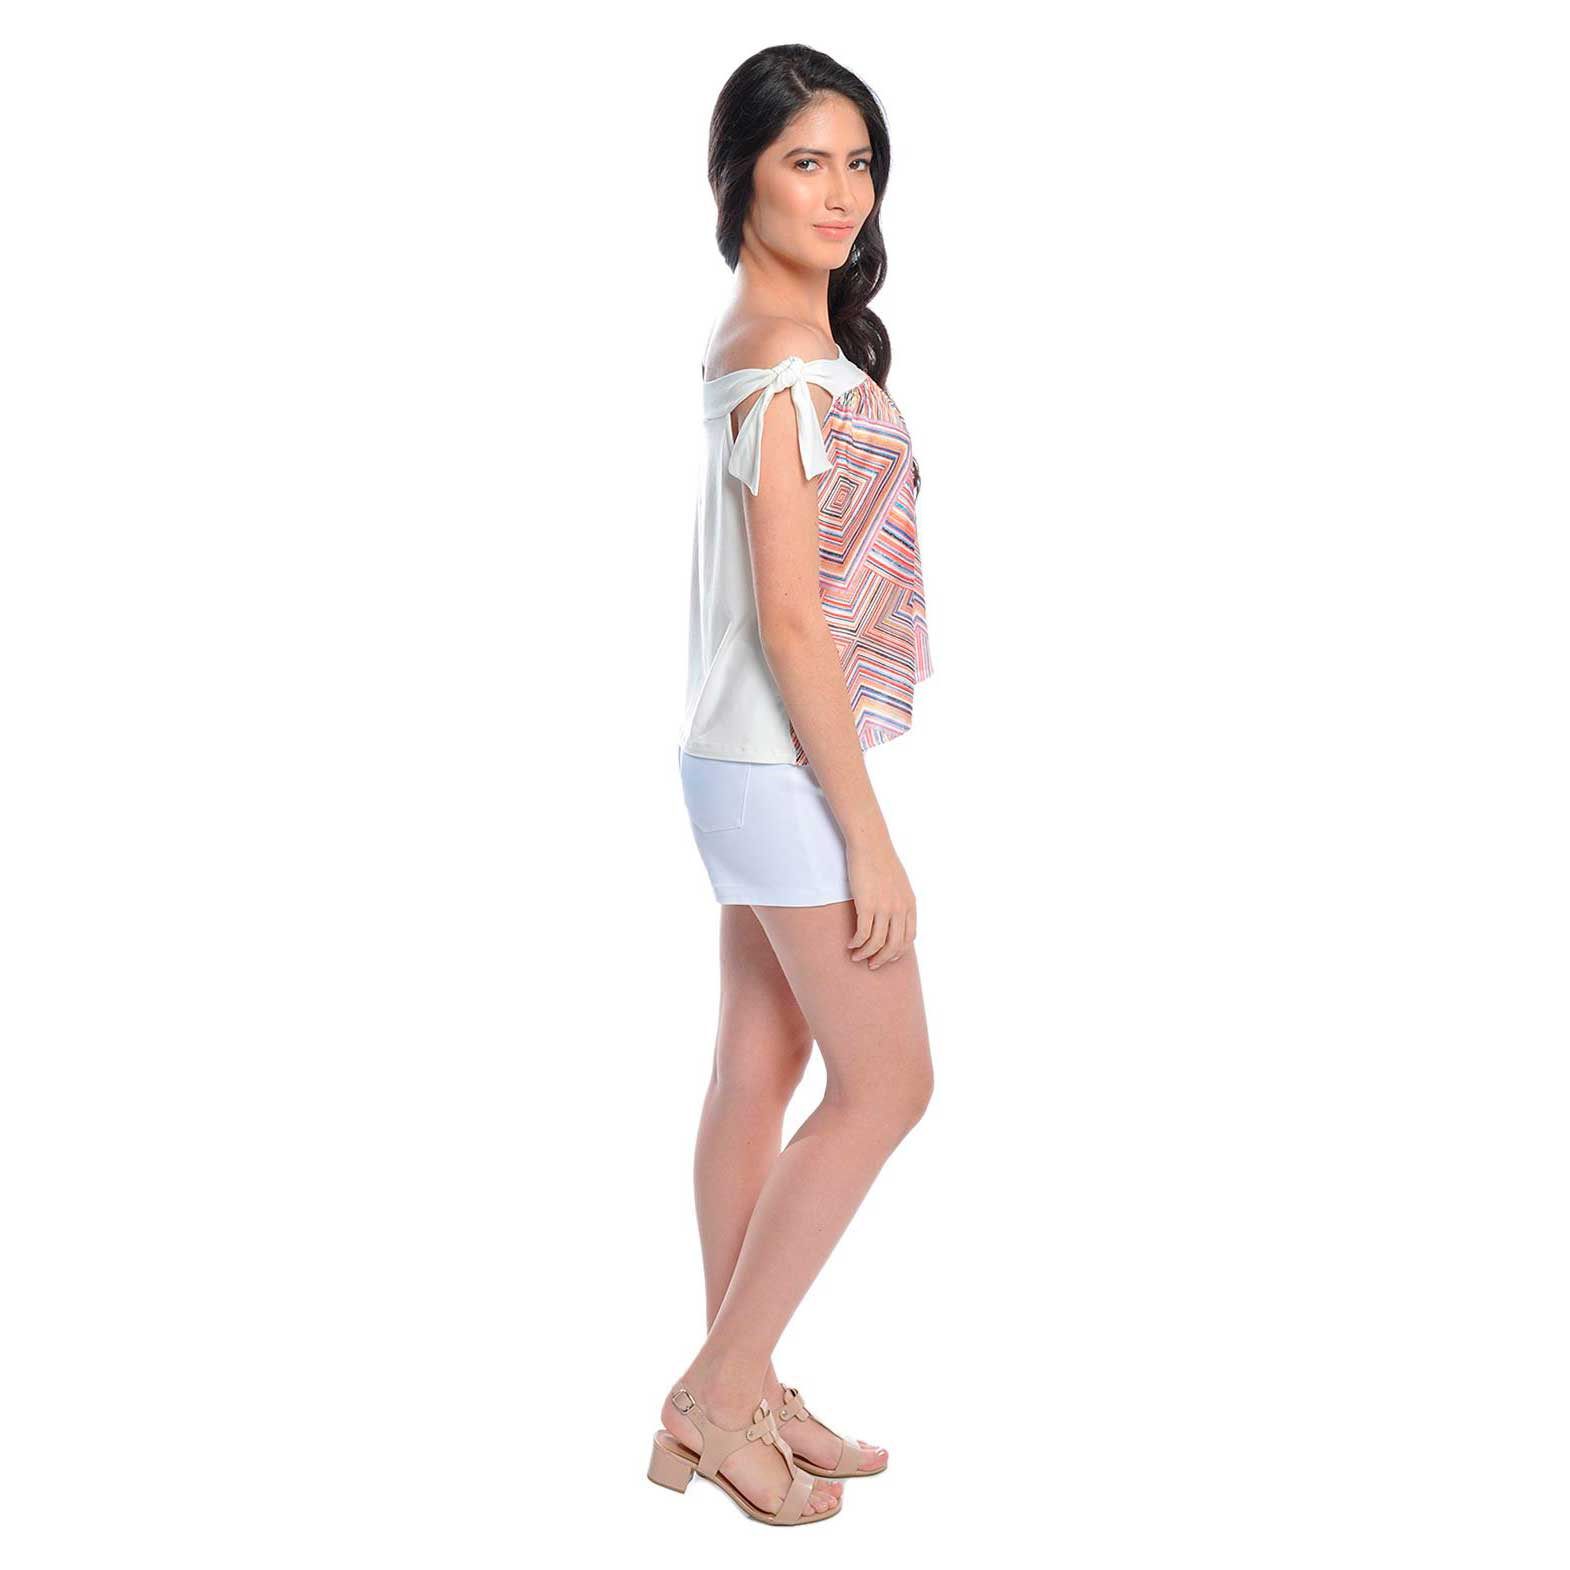 Blusa Fanyland Ombro à Ombro